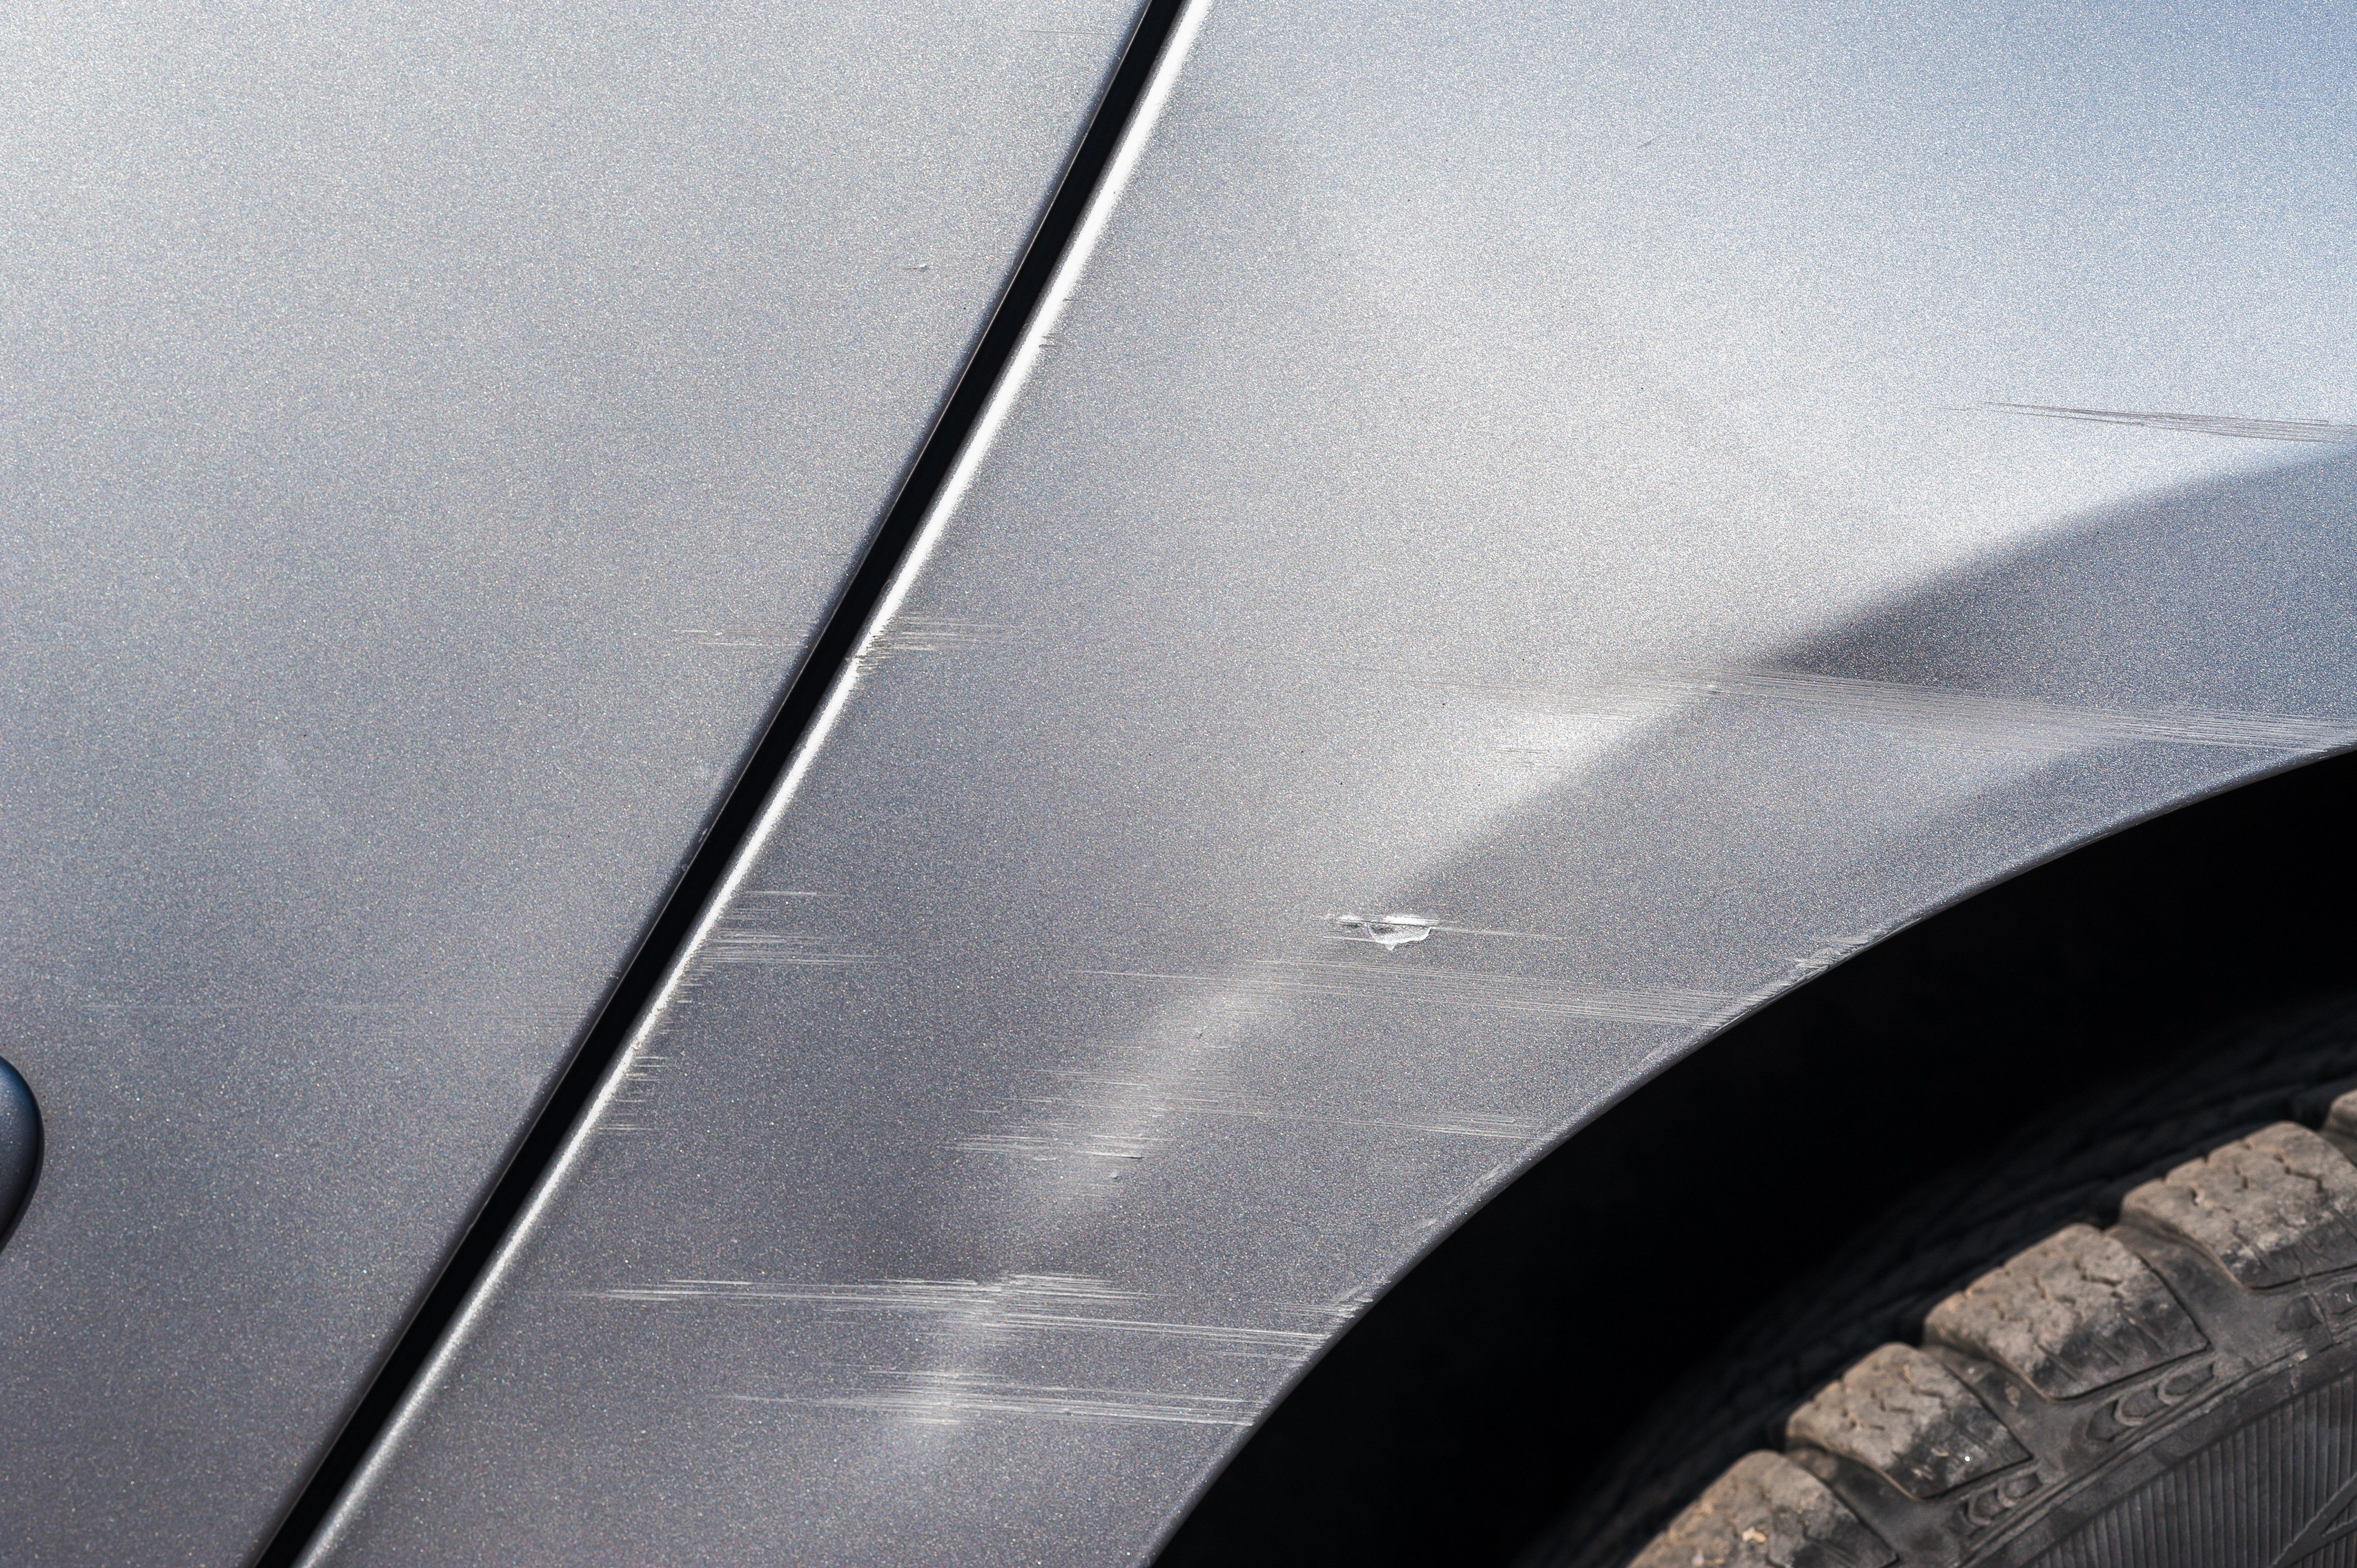 Car have scratched with deep damage to the paint